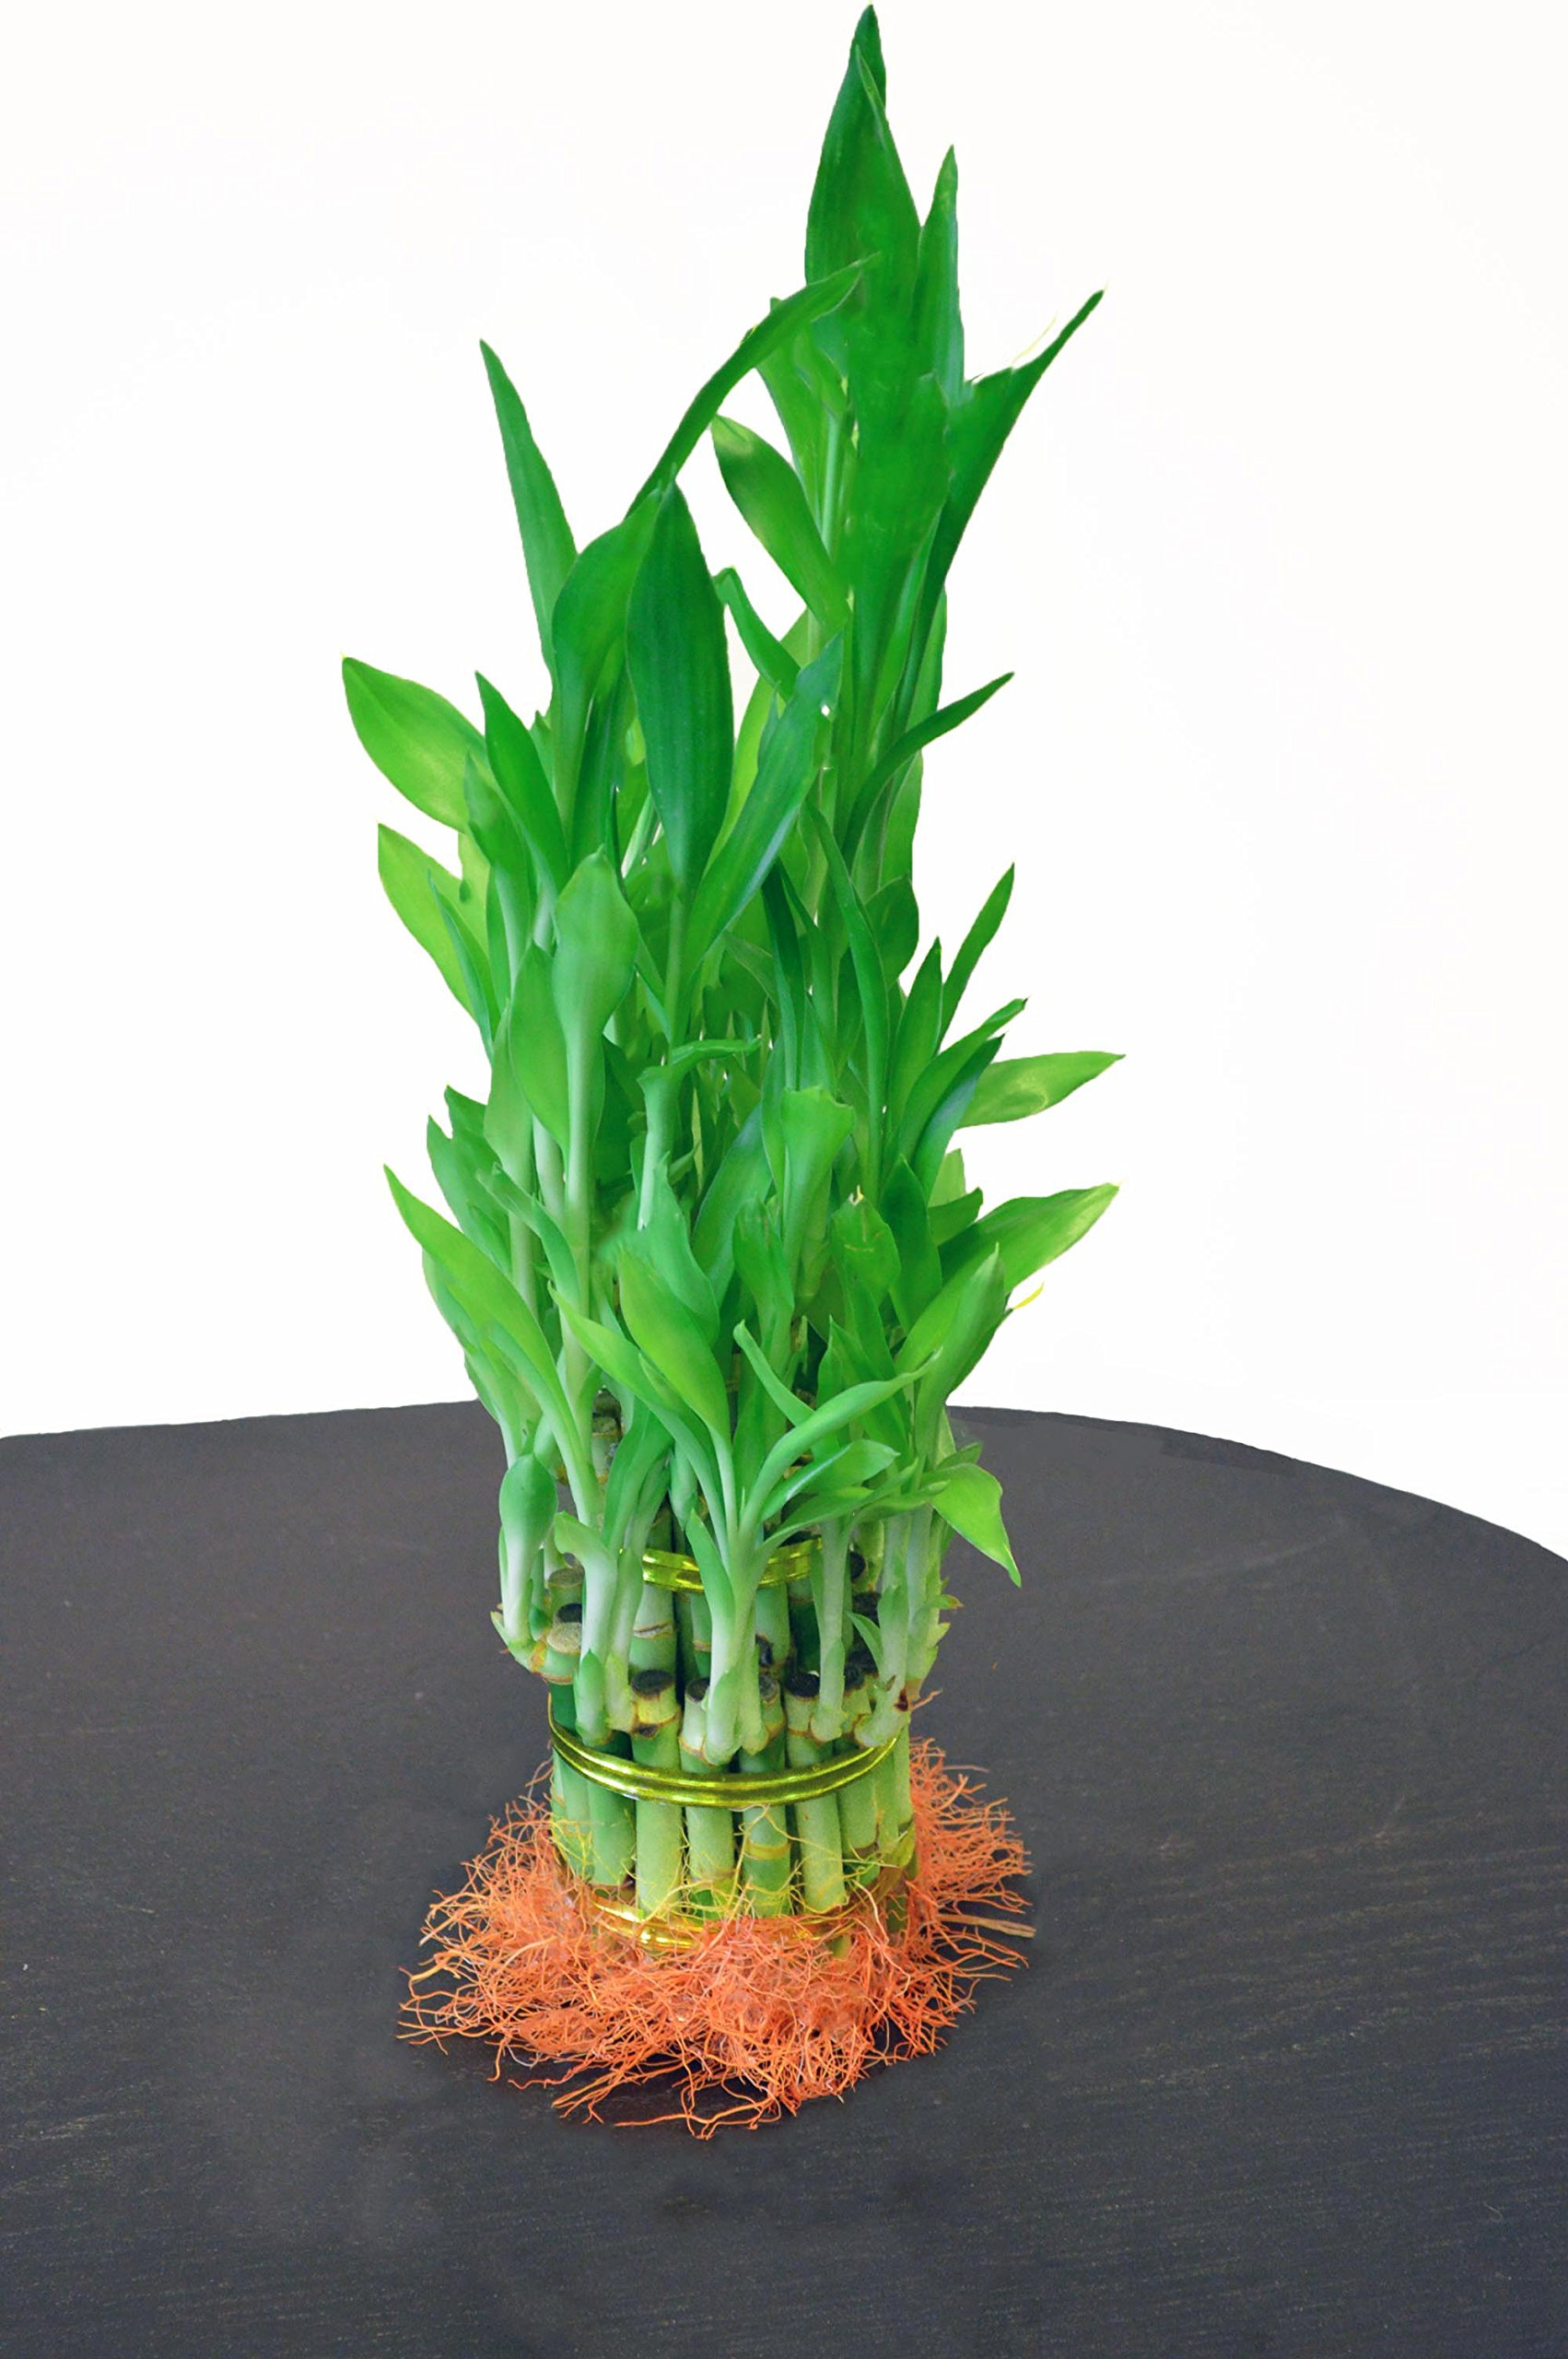 9Greenbox Top Quality Lucky Bamboo for Feng Shui, 5 Pound (Pack of 3) by 9GreenBox